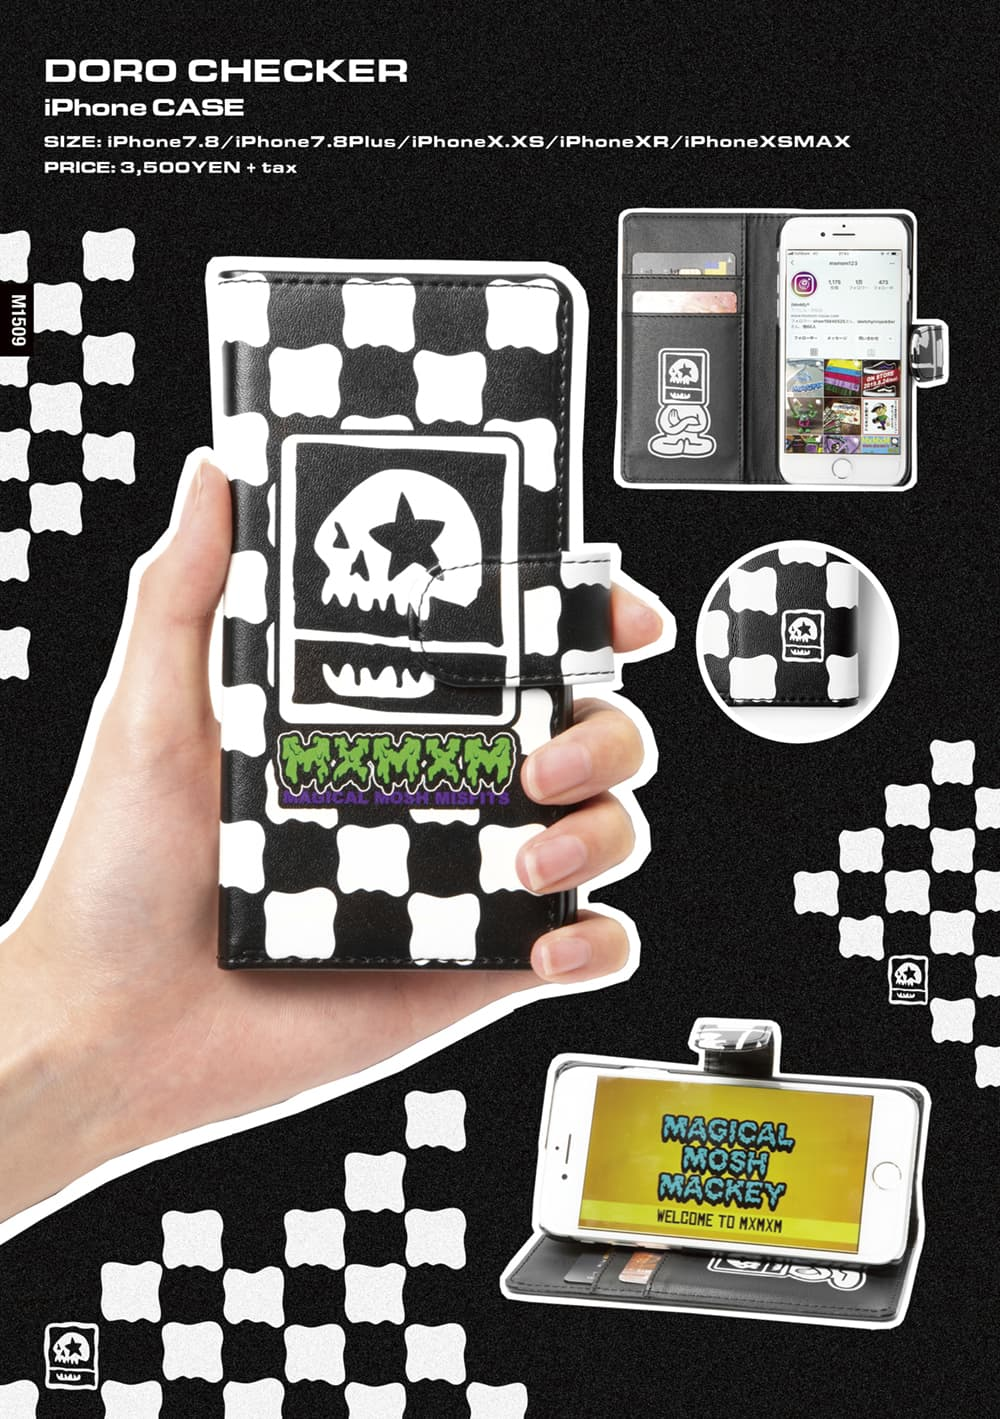 DORO CHECKER iPhone CASE